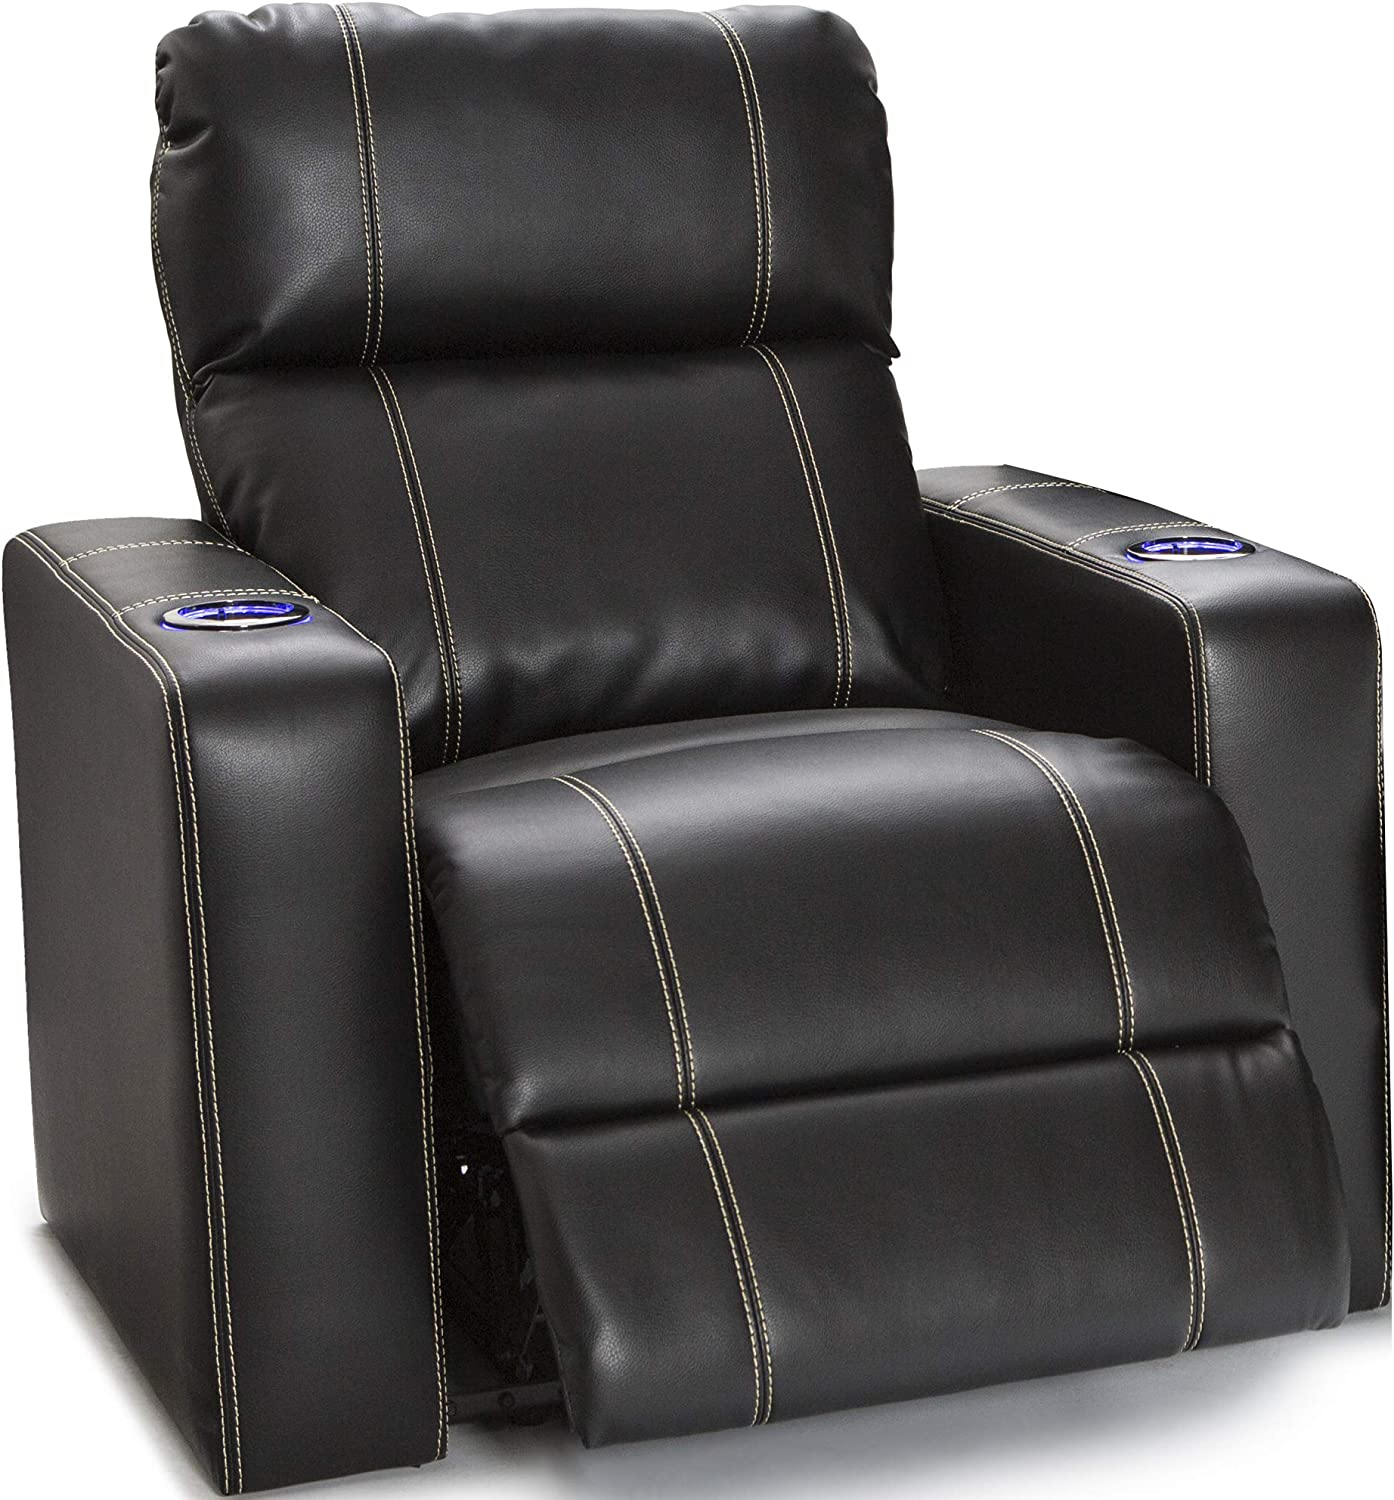 Seatcraft Dynasty - Home Theater Seating - Power Recliner - Leather Gel - Lighted Cup Holders - USB Charging - Wall Hugger - Black